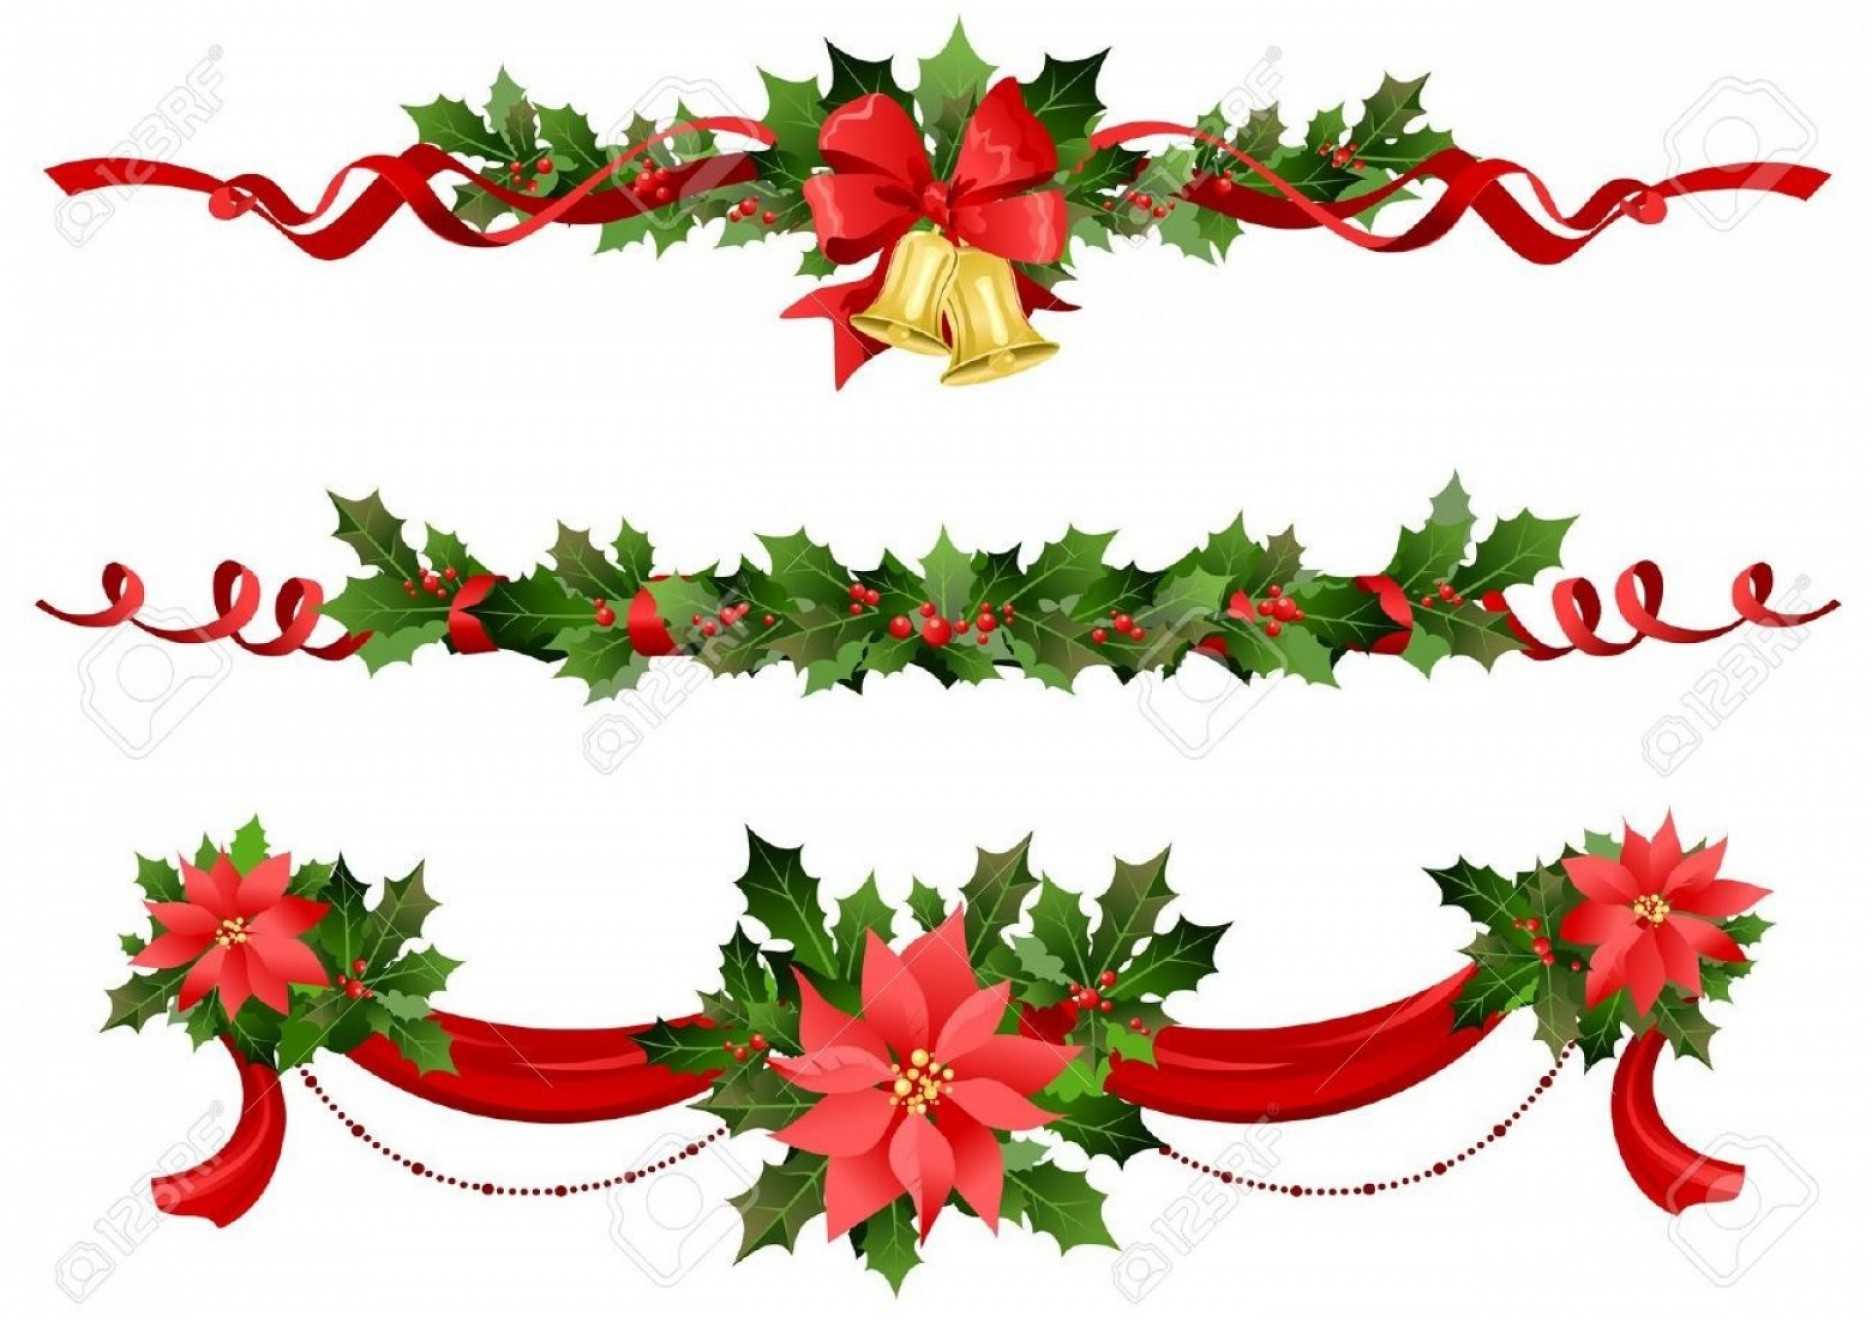 Christmas Holly Border Vector: Christmas Border With Holly Berry Royalty Free Vector Image Throughout Christmas Border Vector